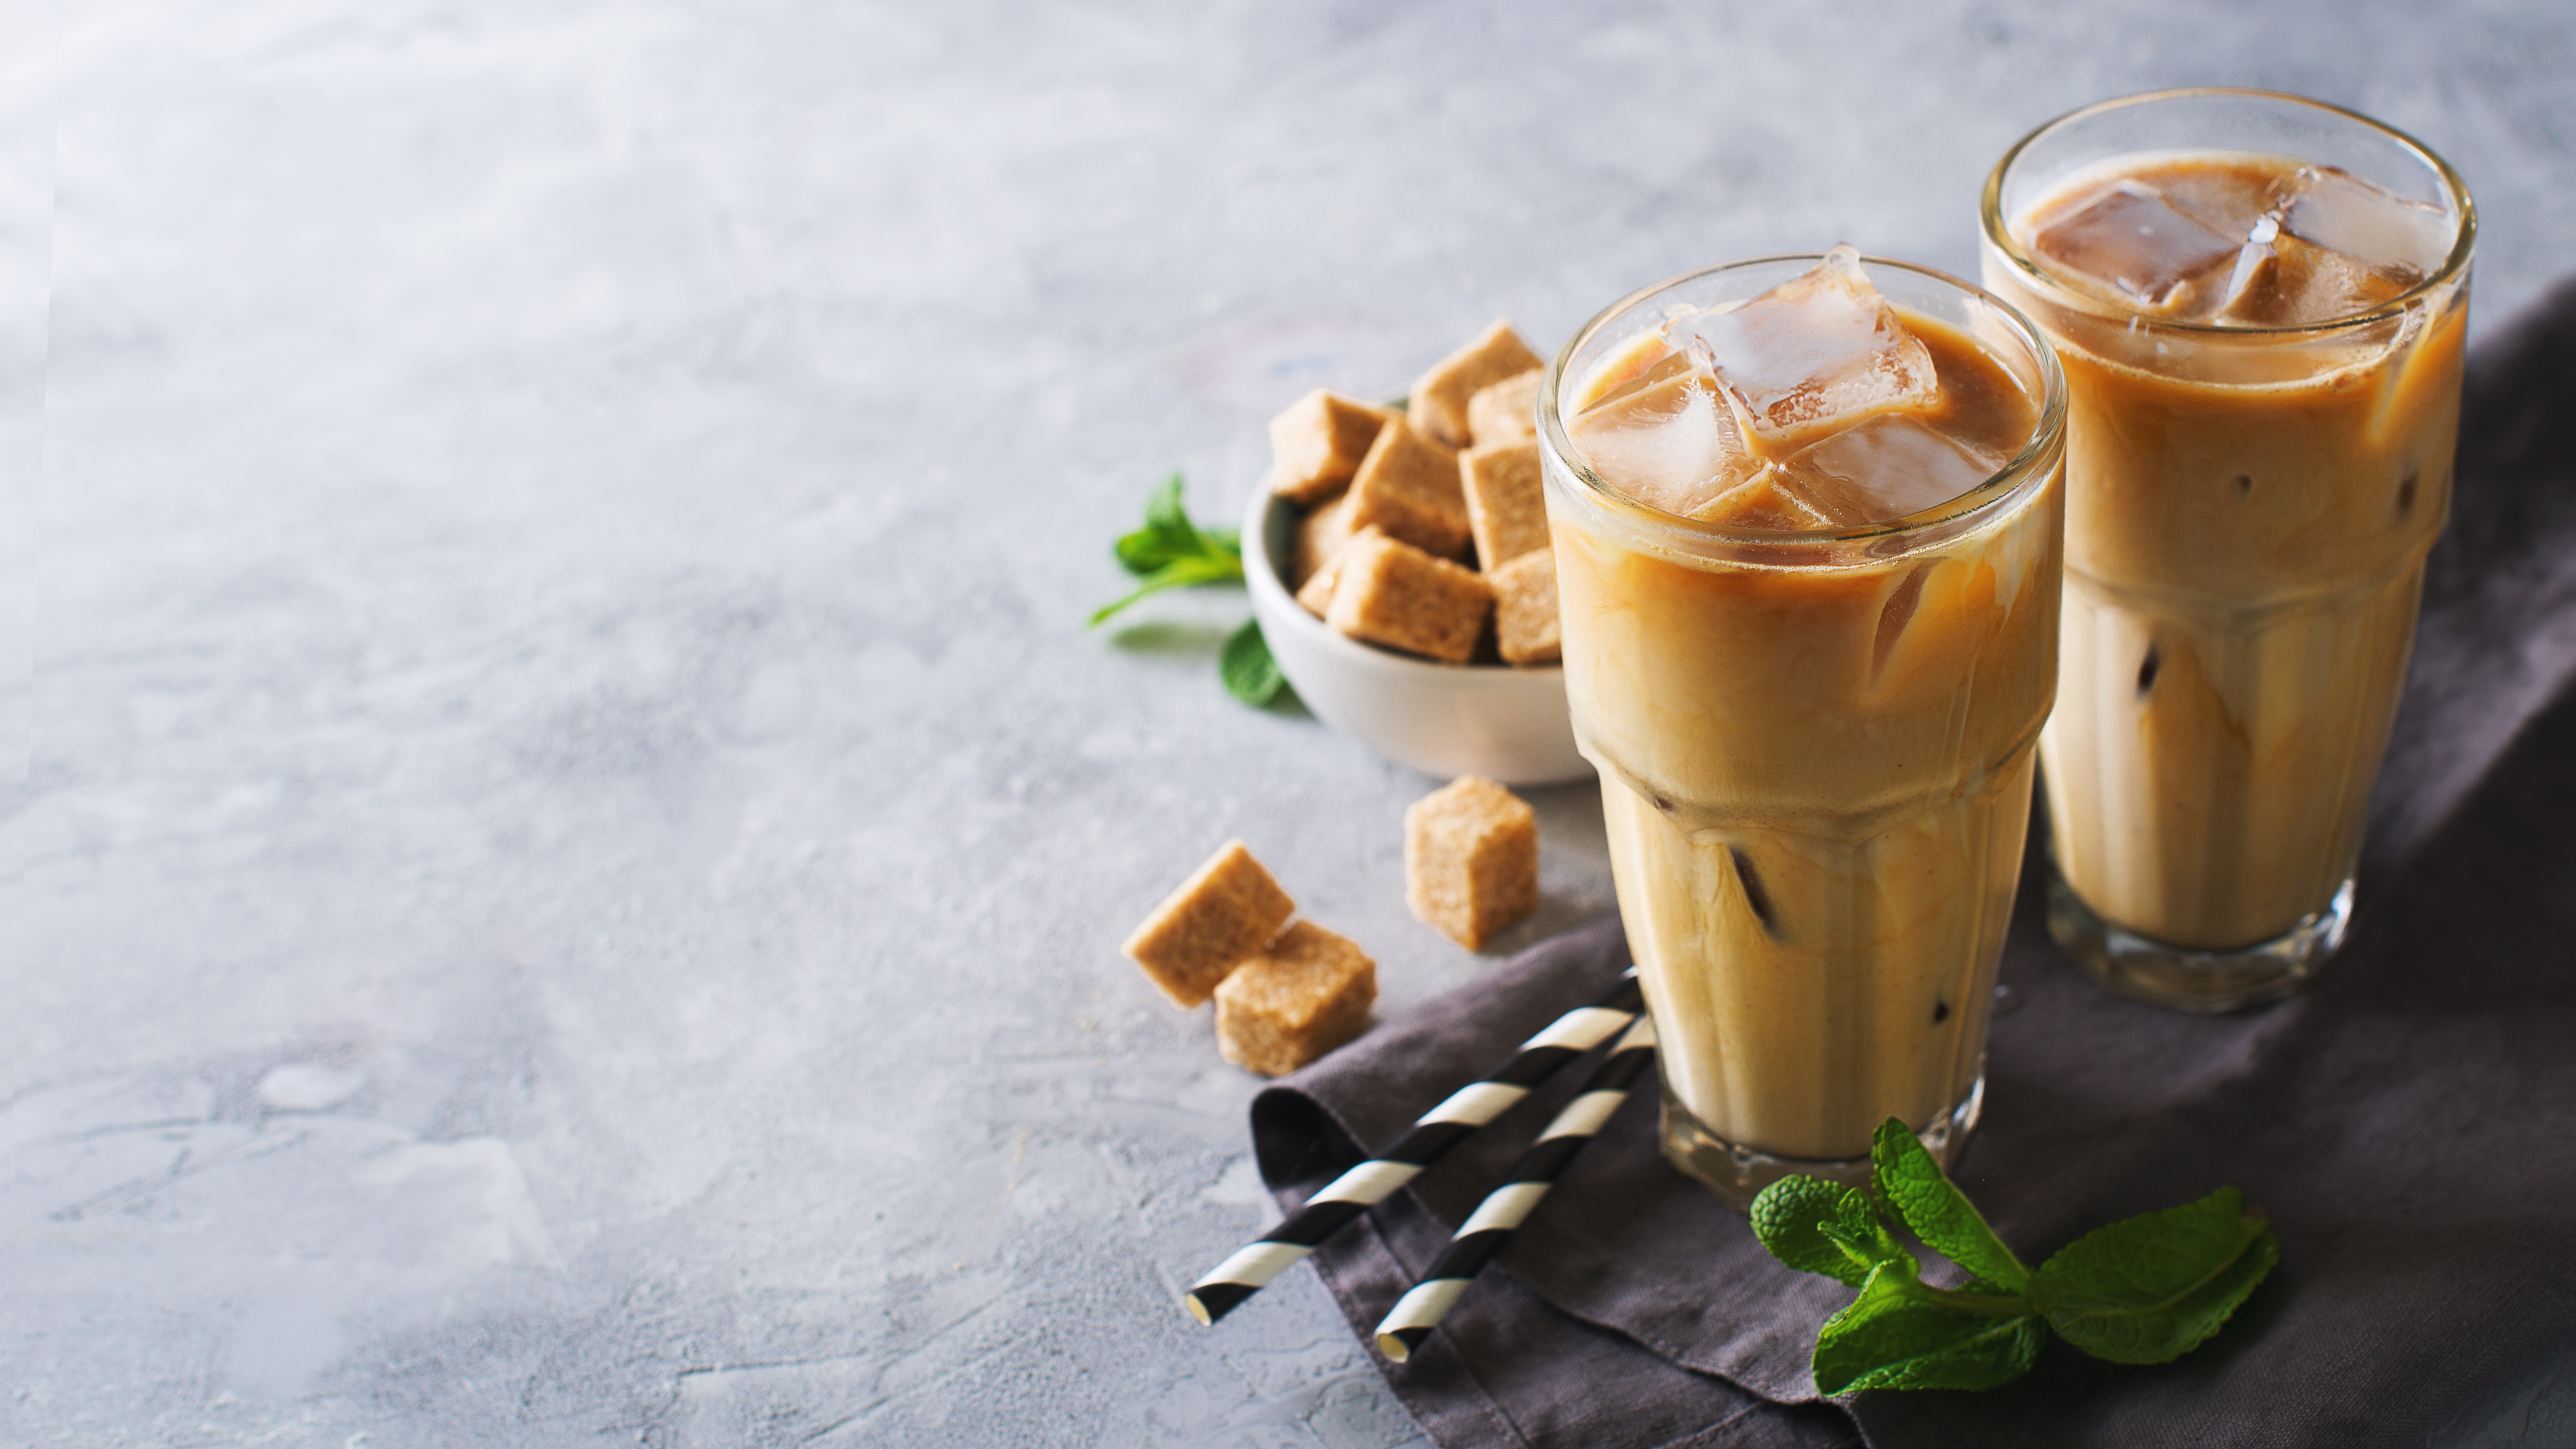 Why GE Refrigerators are Great for Making that Perfect Cold Brew